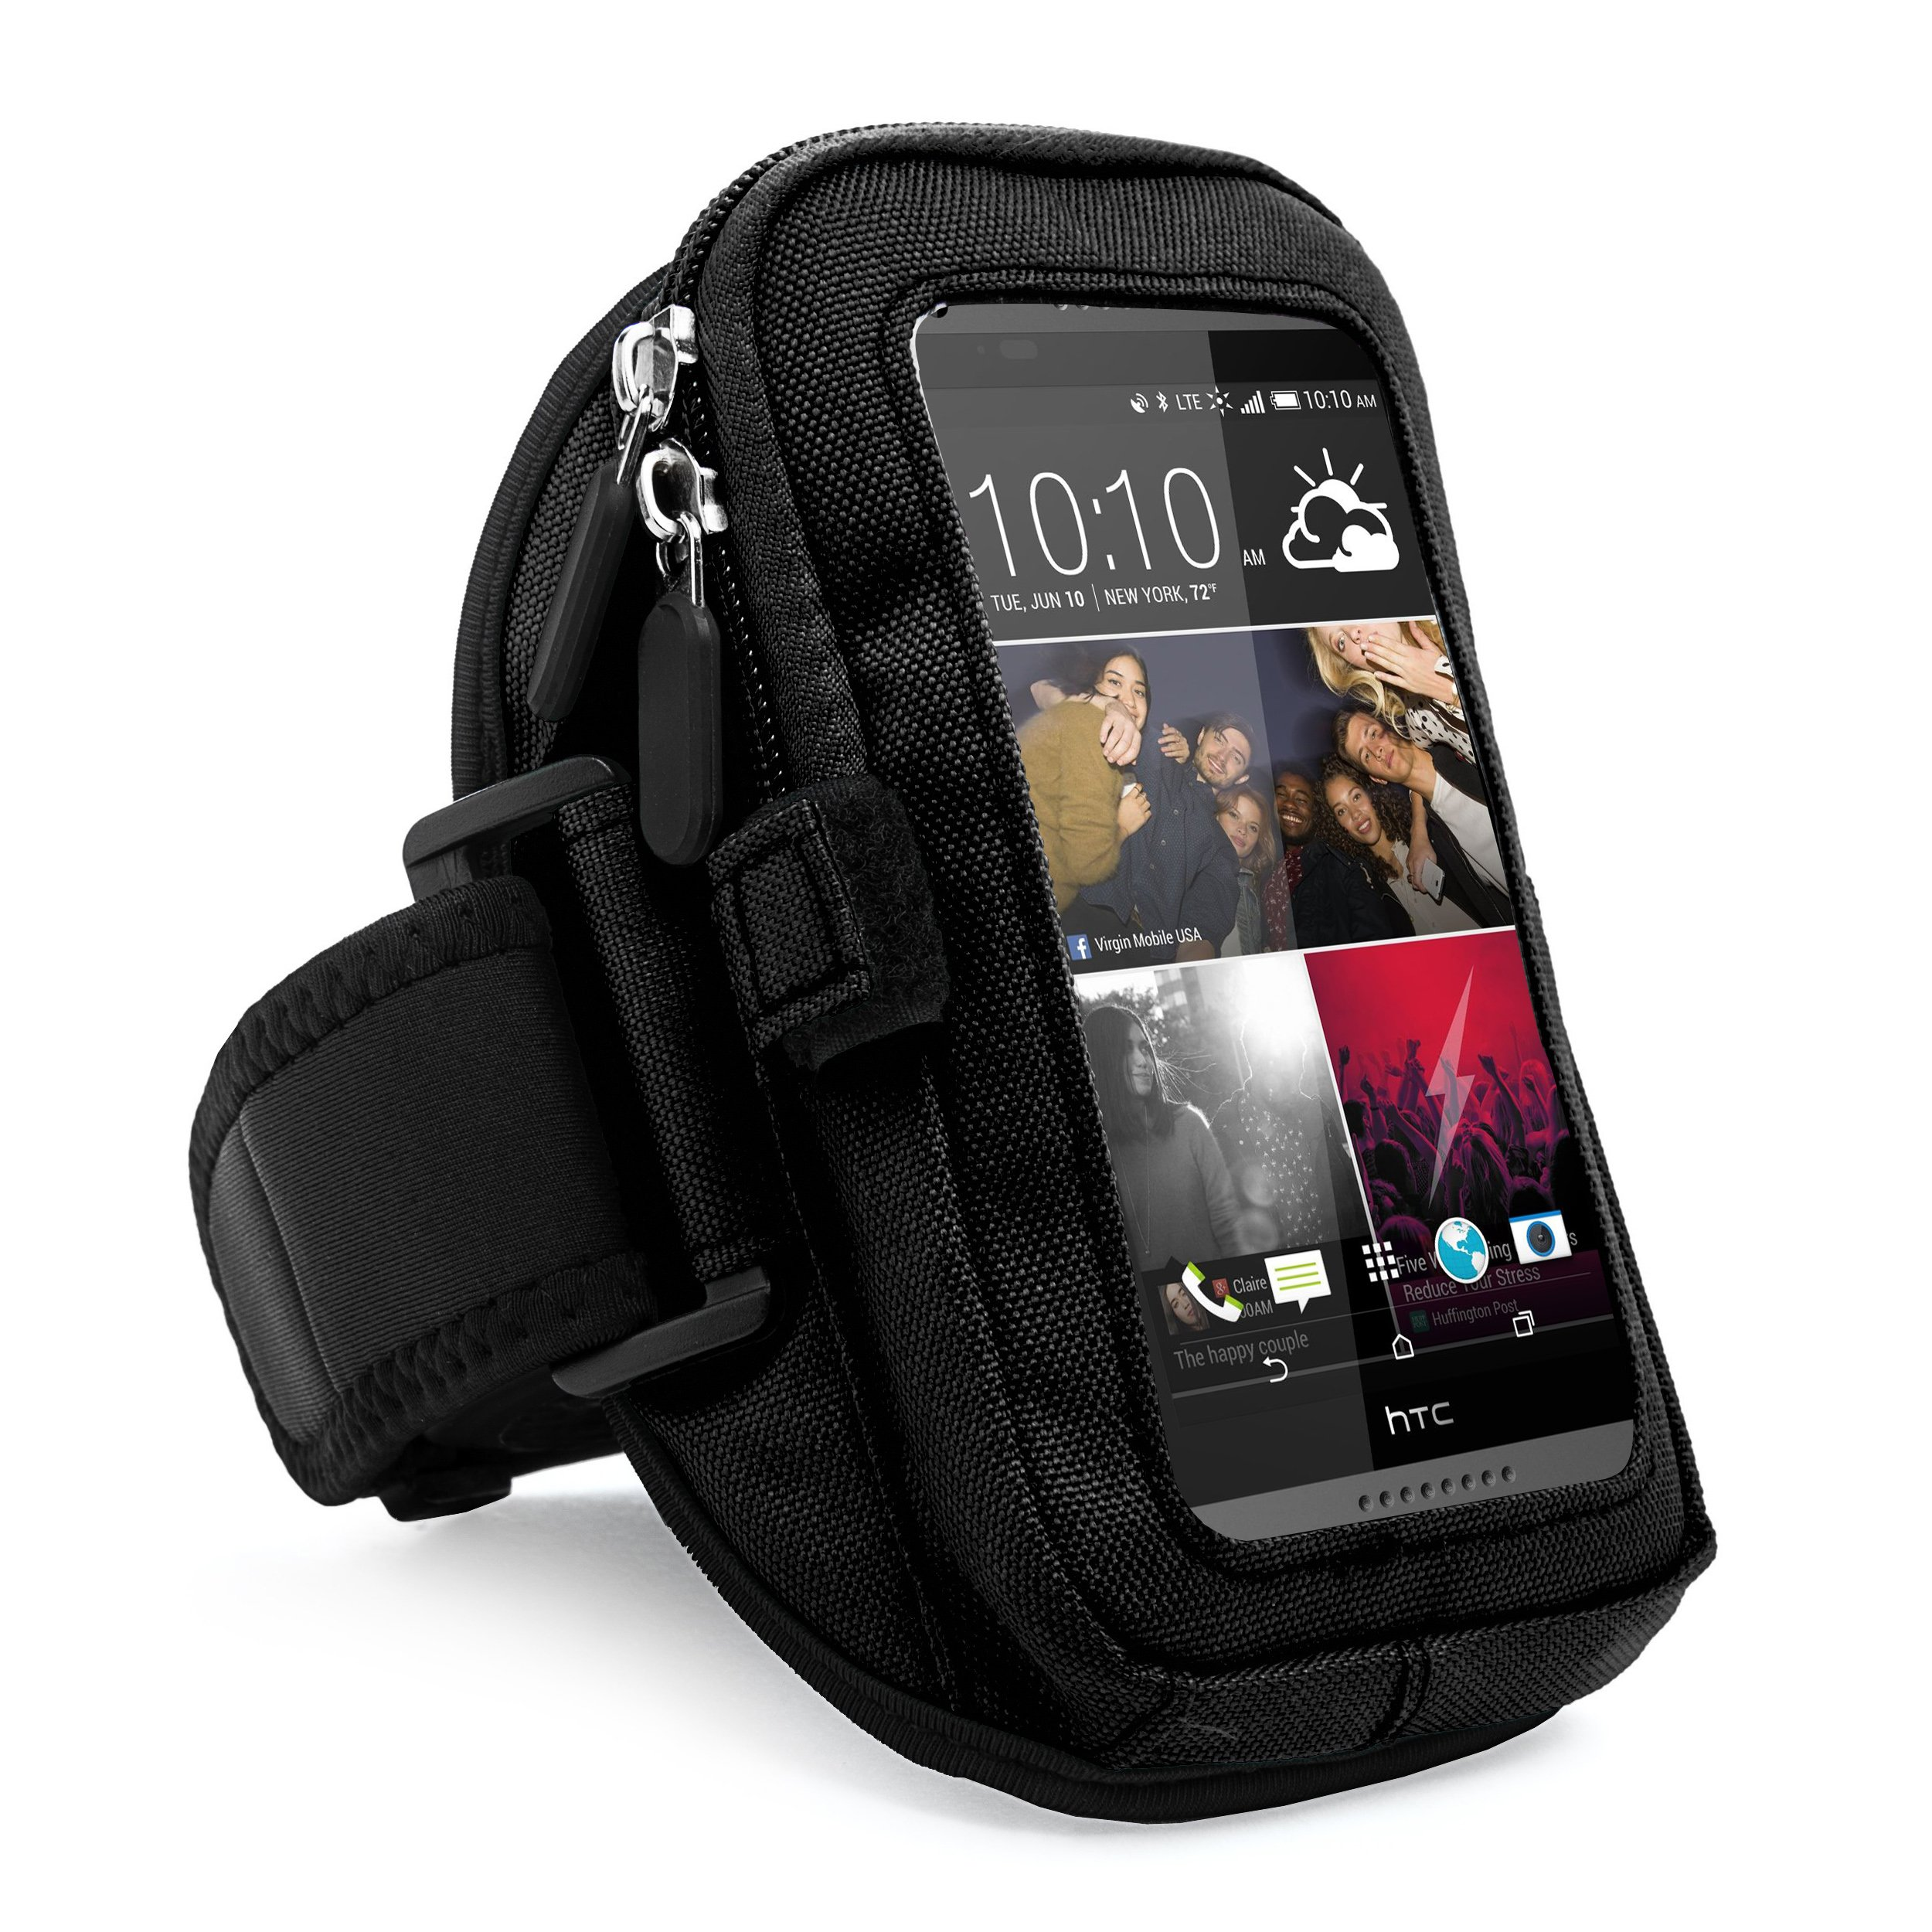 VanGoddy zippered Sport Case Cover Gym Running Armband with removable strap & card / key holder for HTC One M9 / Desire 816 / 816w / 820U Fit 4.7 to 5.5 inch Ios Android Windows smart Phone (Black)